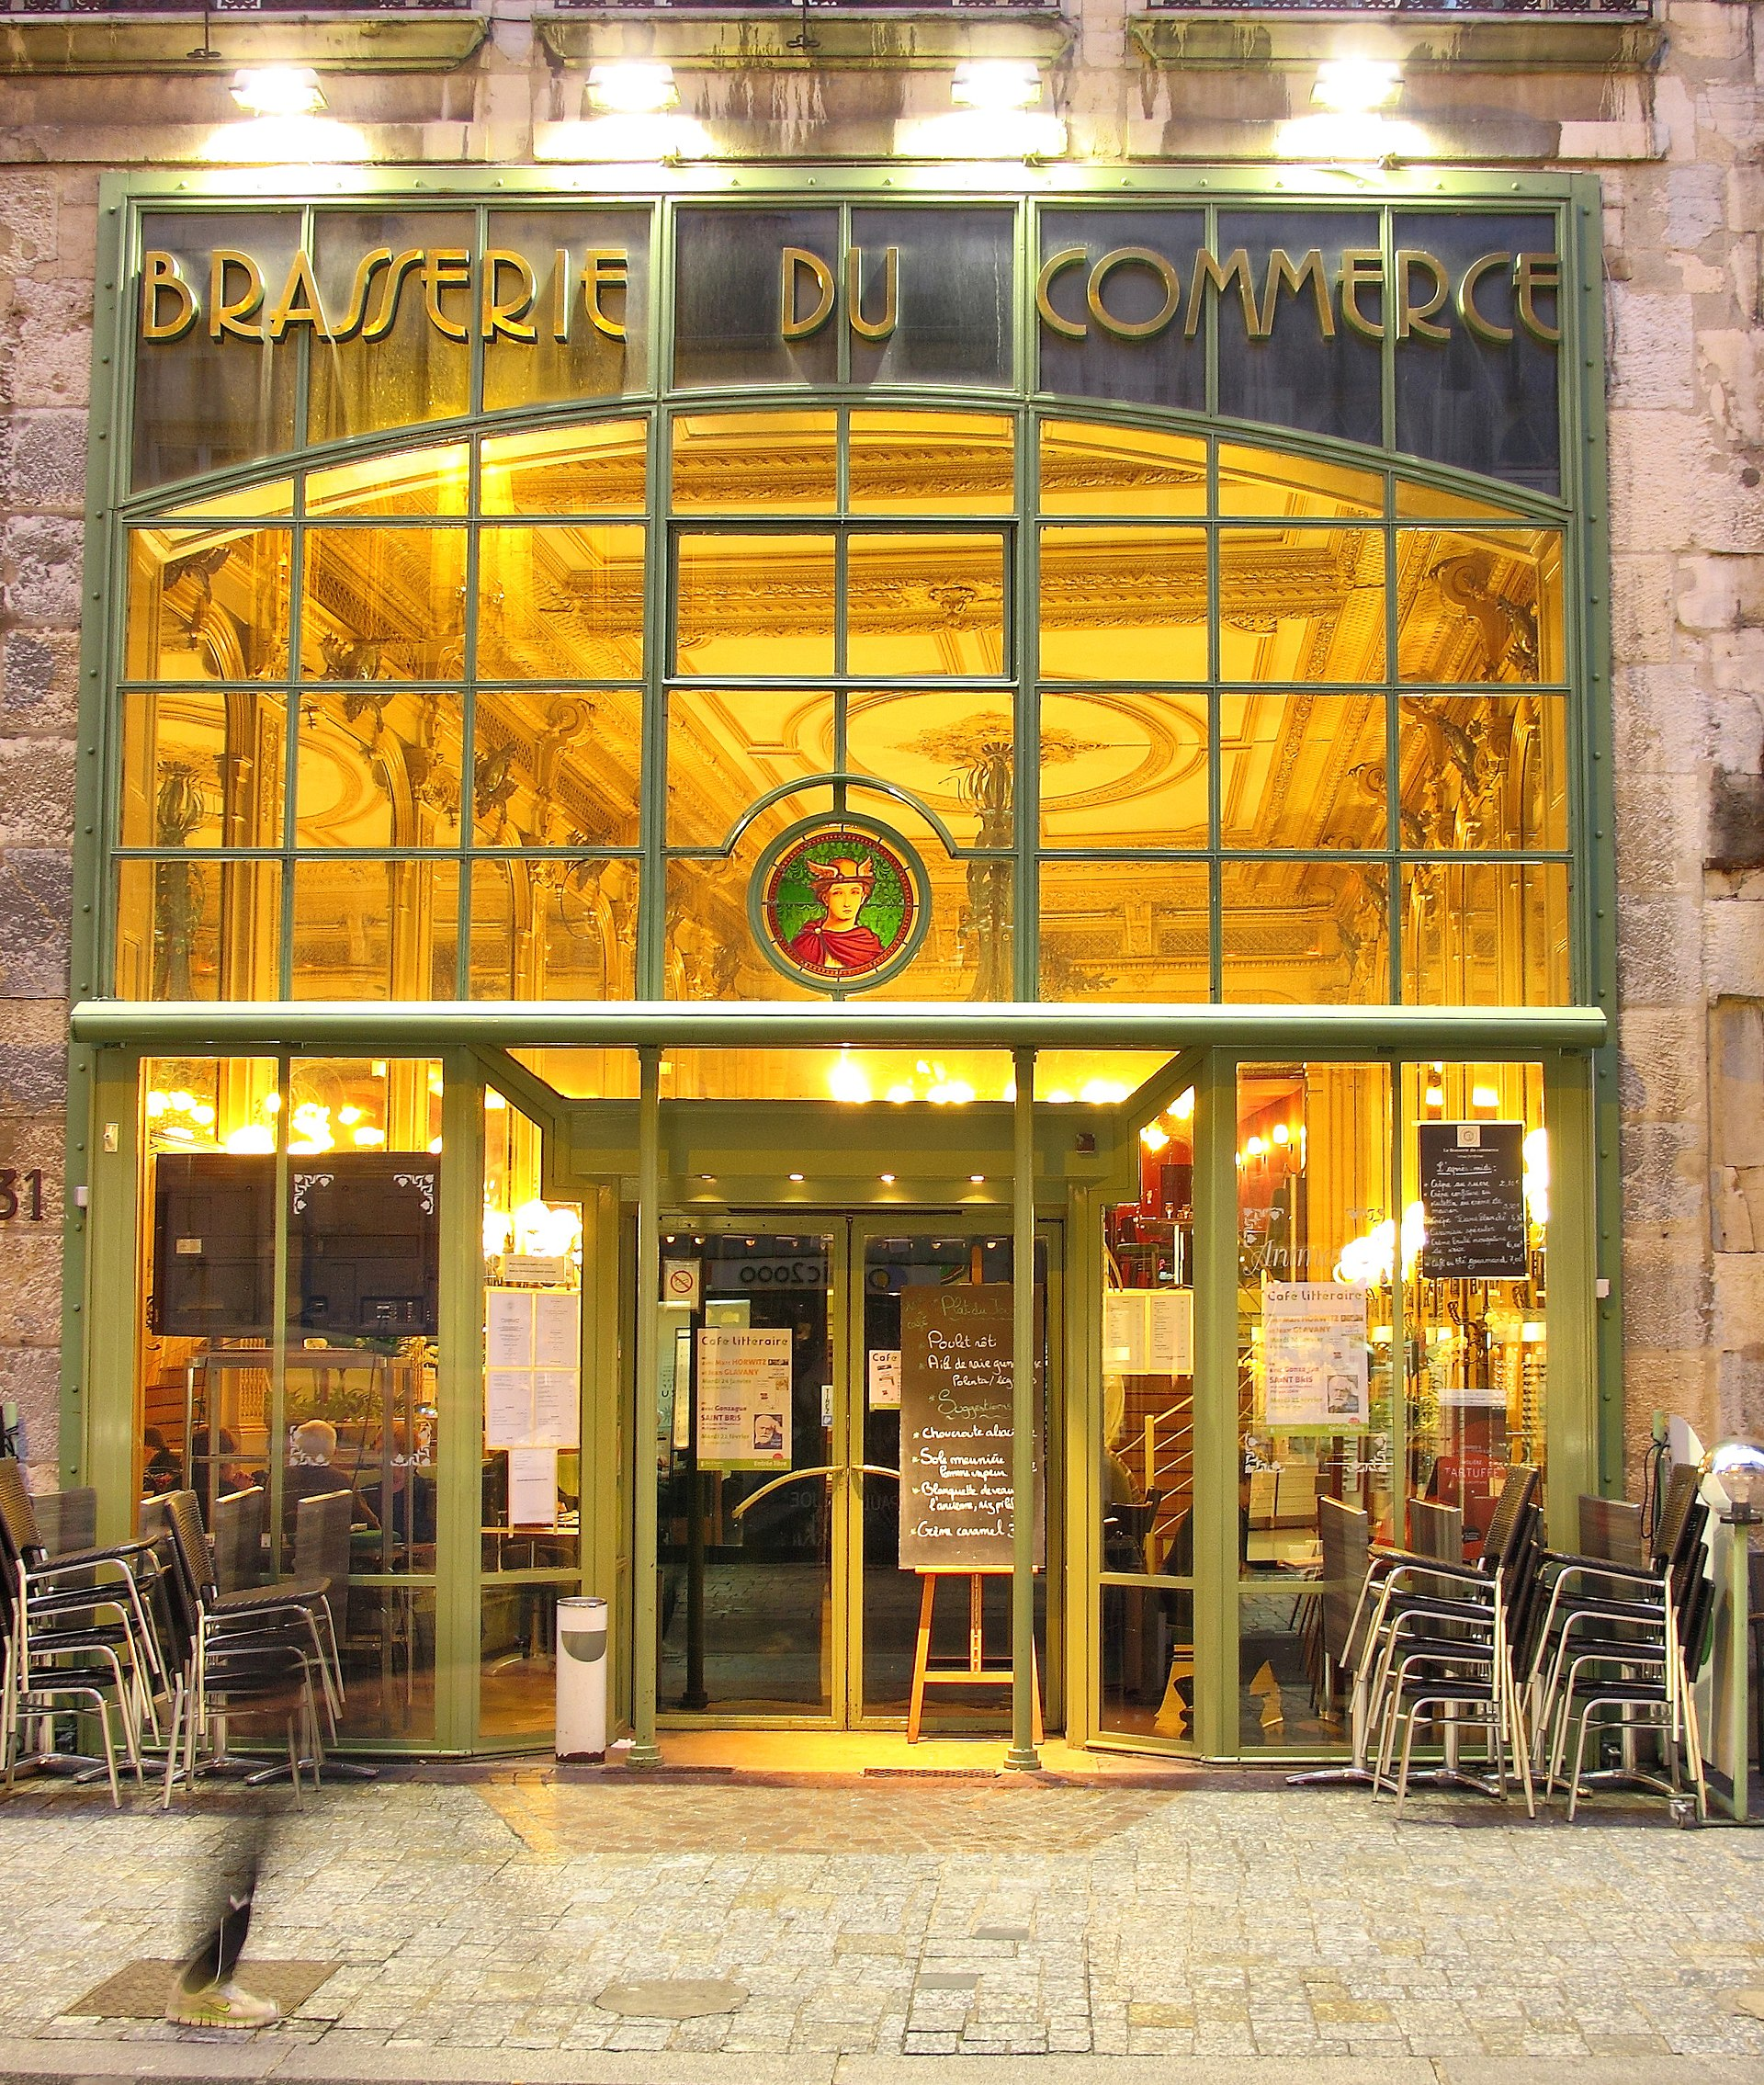 Restaurant Le Caf Ef Bf Bd Du Commerce Paris